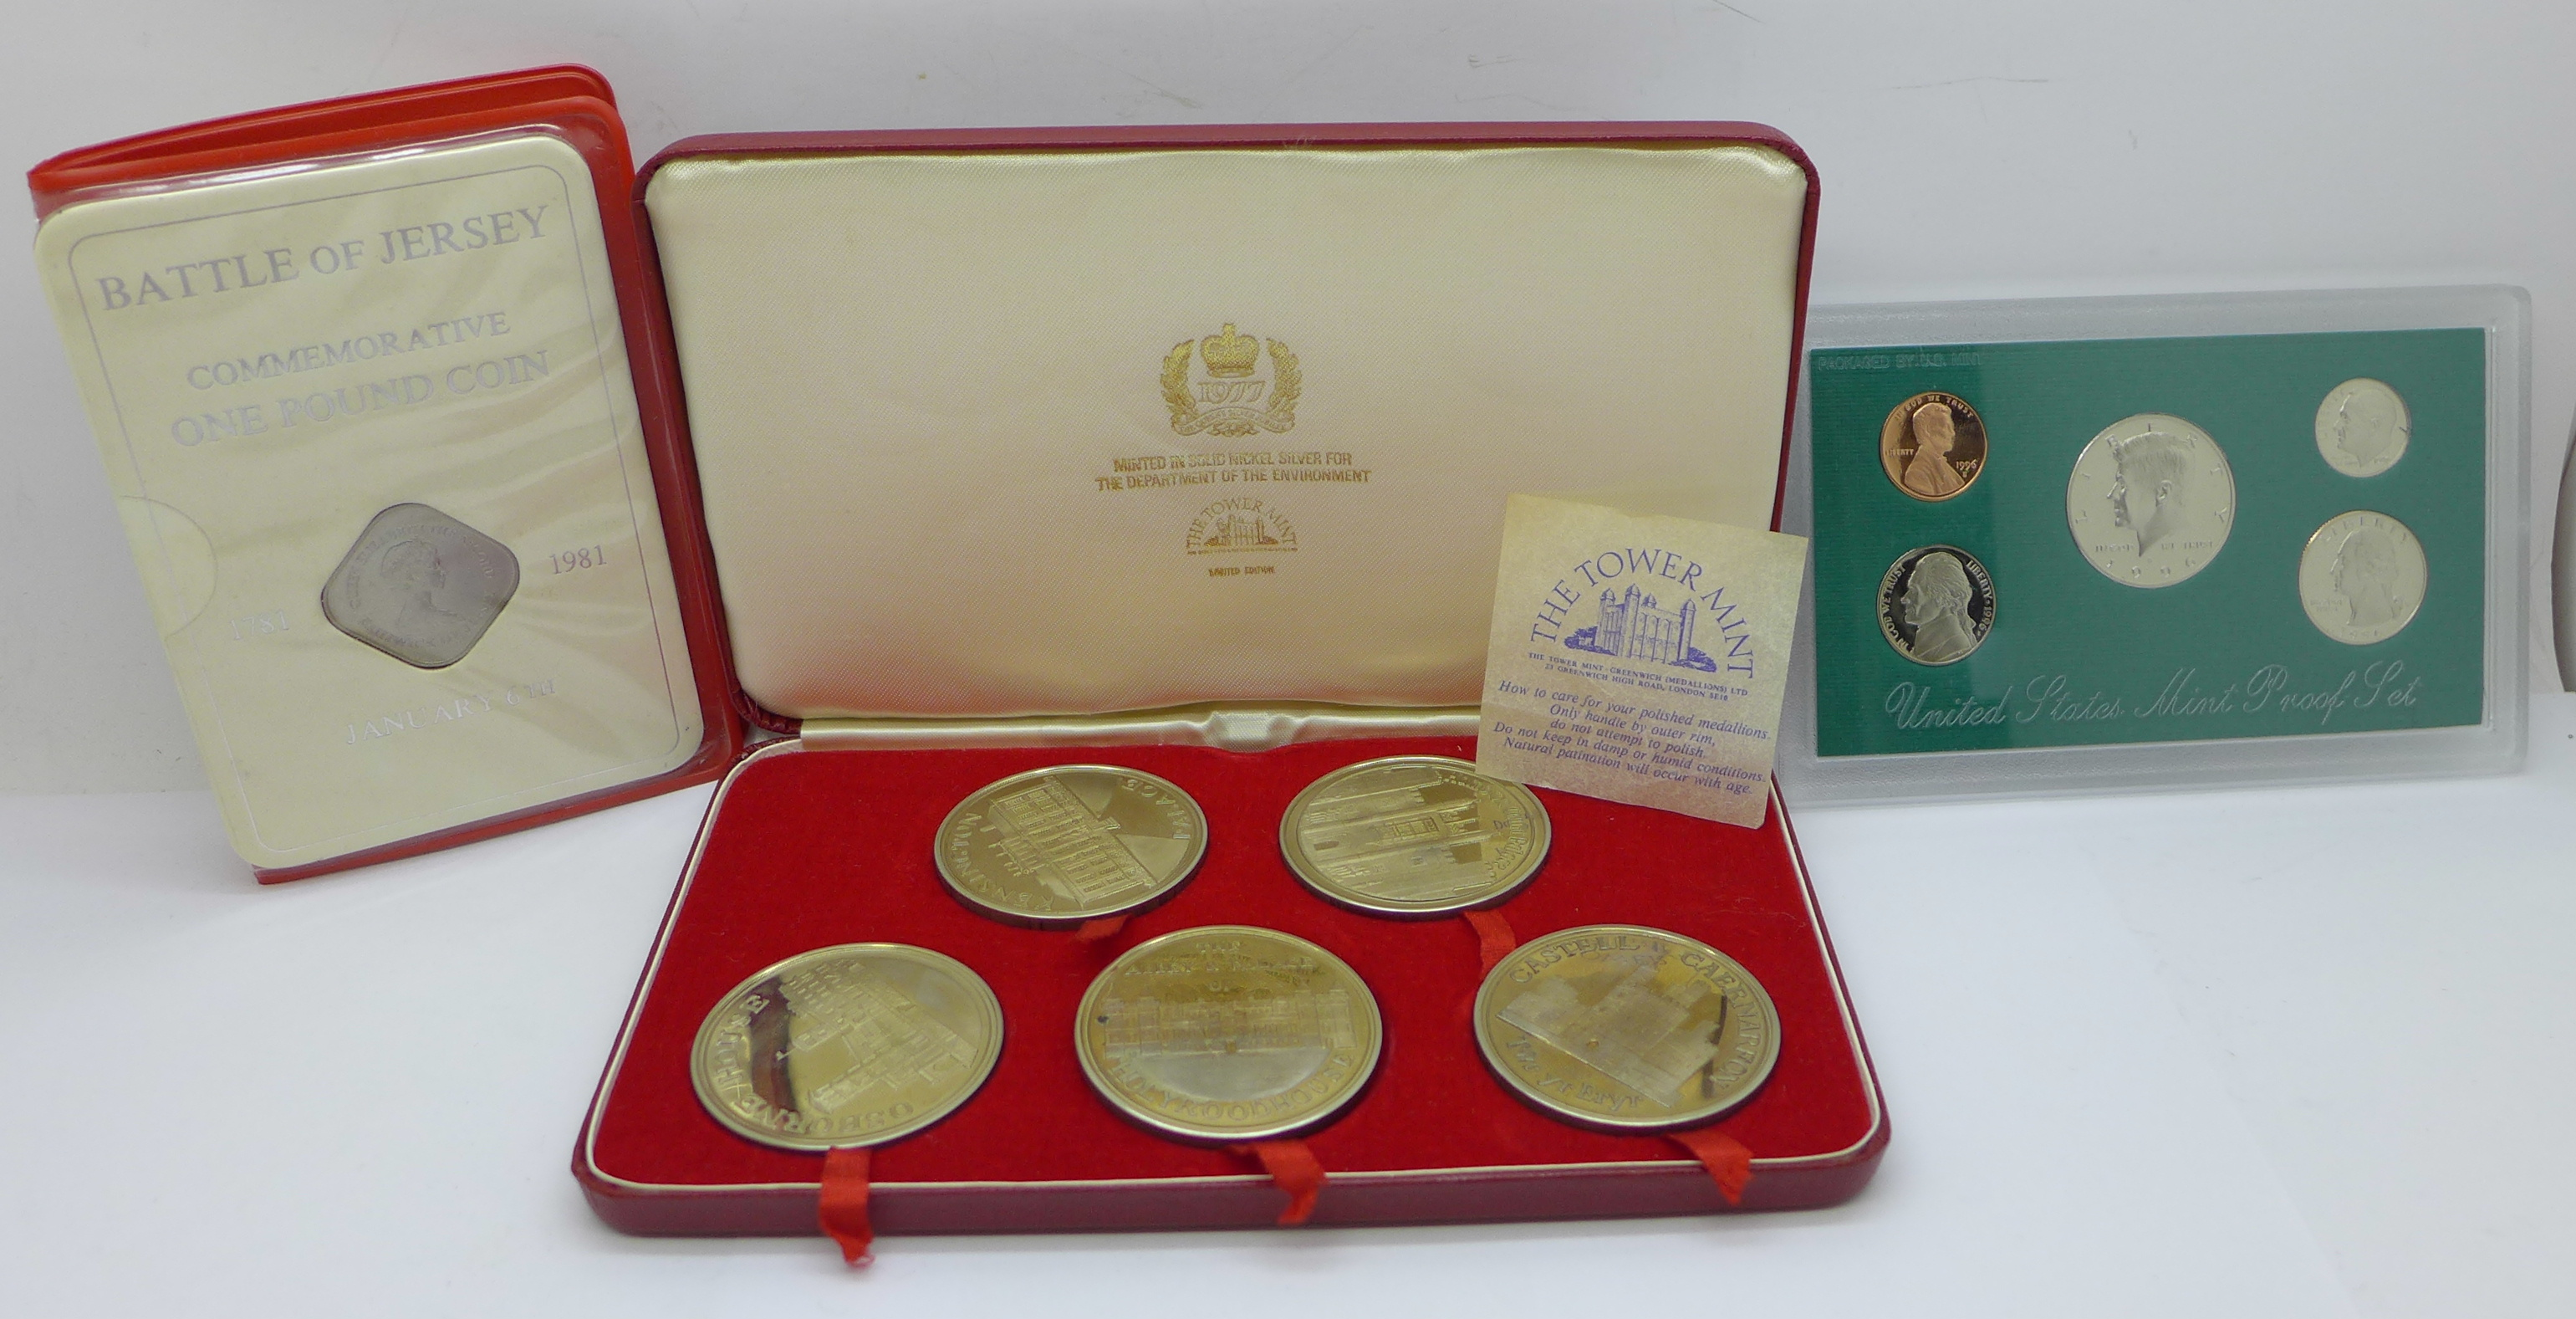 A Tower Mint limited edition nickel silver 5-coin set, cased, a 1996 United States mint proof set,